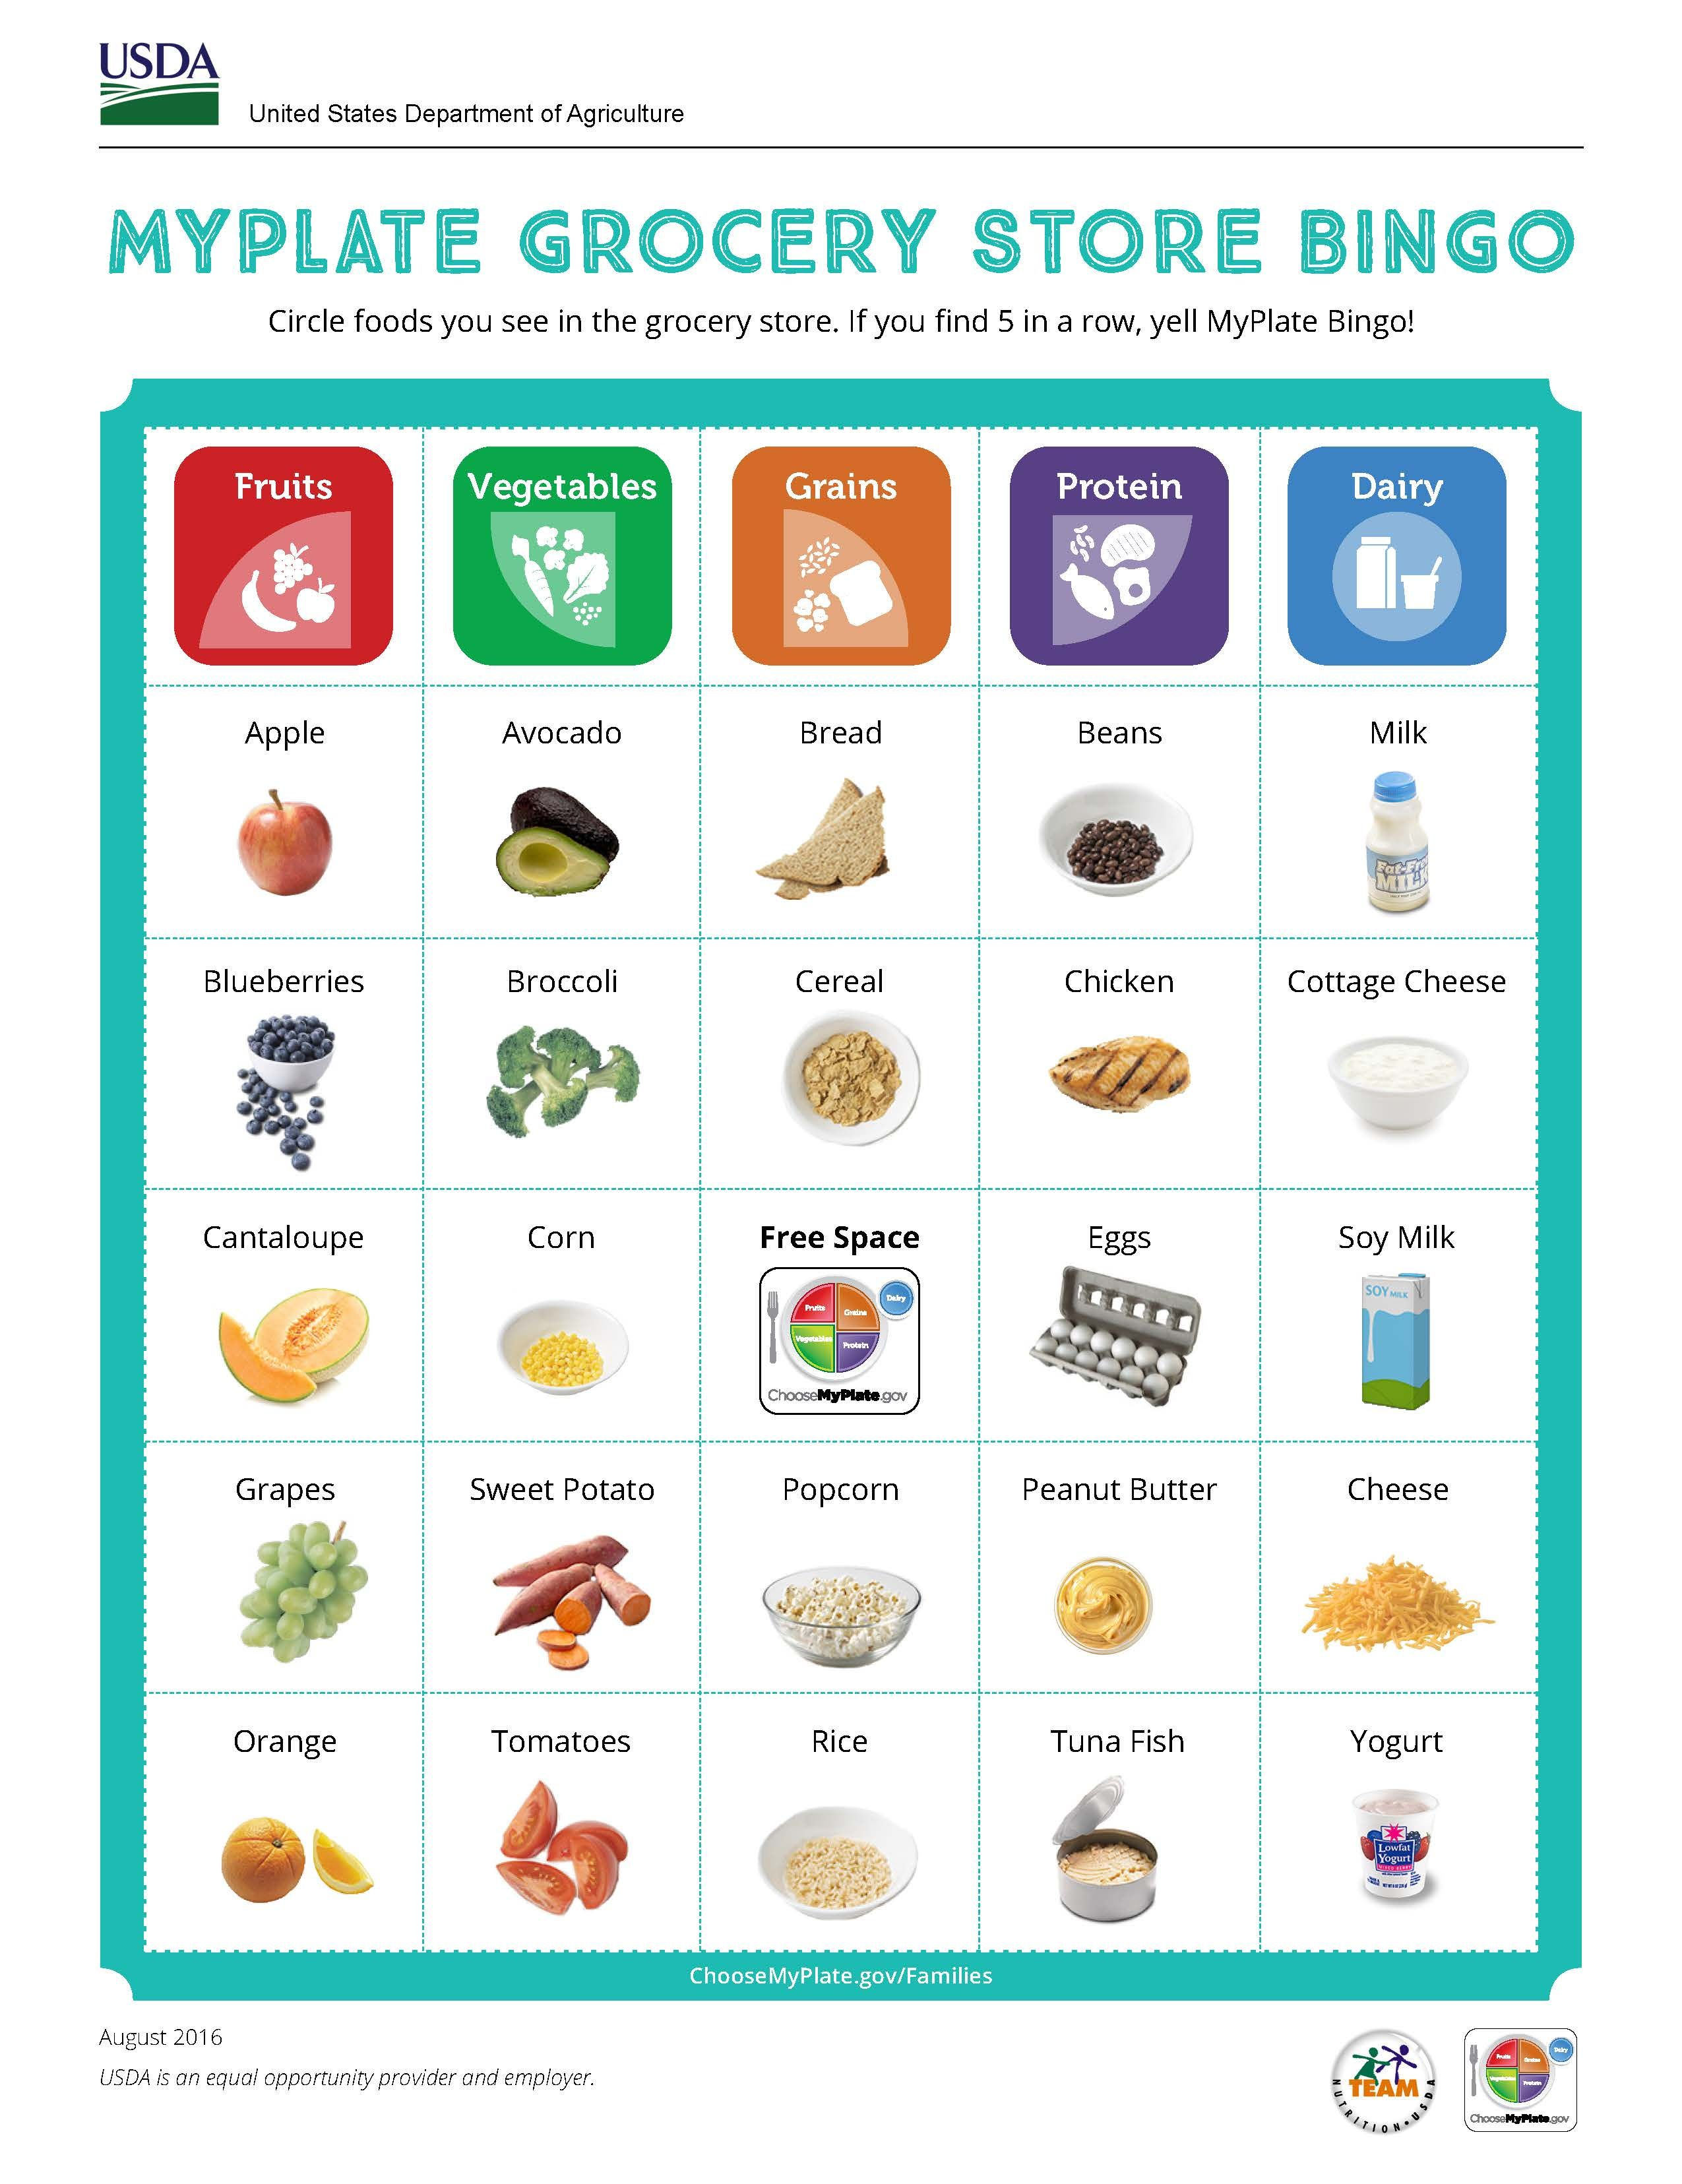 Turn A Shopping Trip Into A Game With Grocery Store Bingo